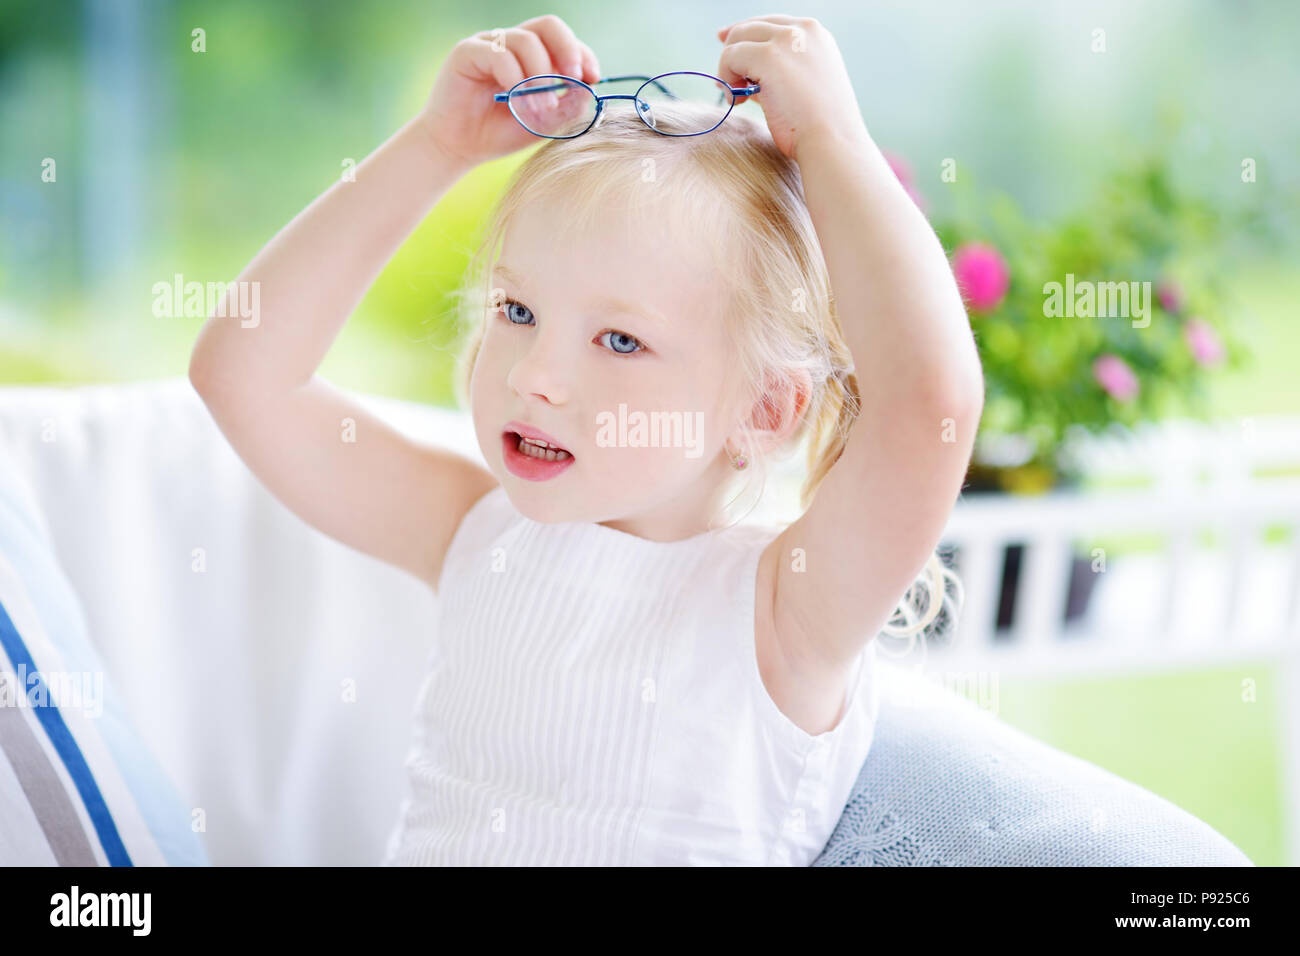 b6b70e05ced Portrait of beautiful little girl wearing glasses at home. Vision ...